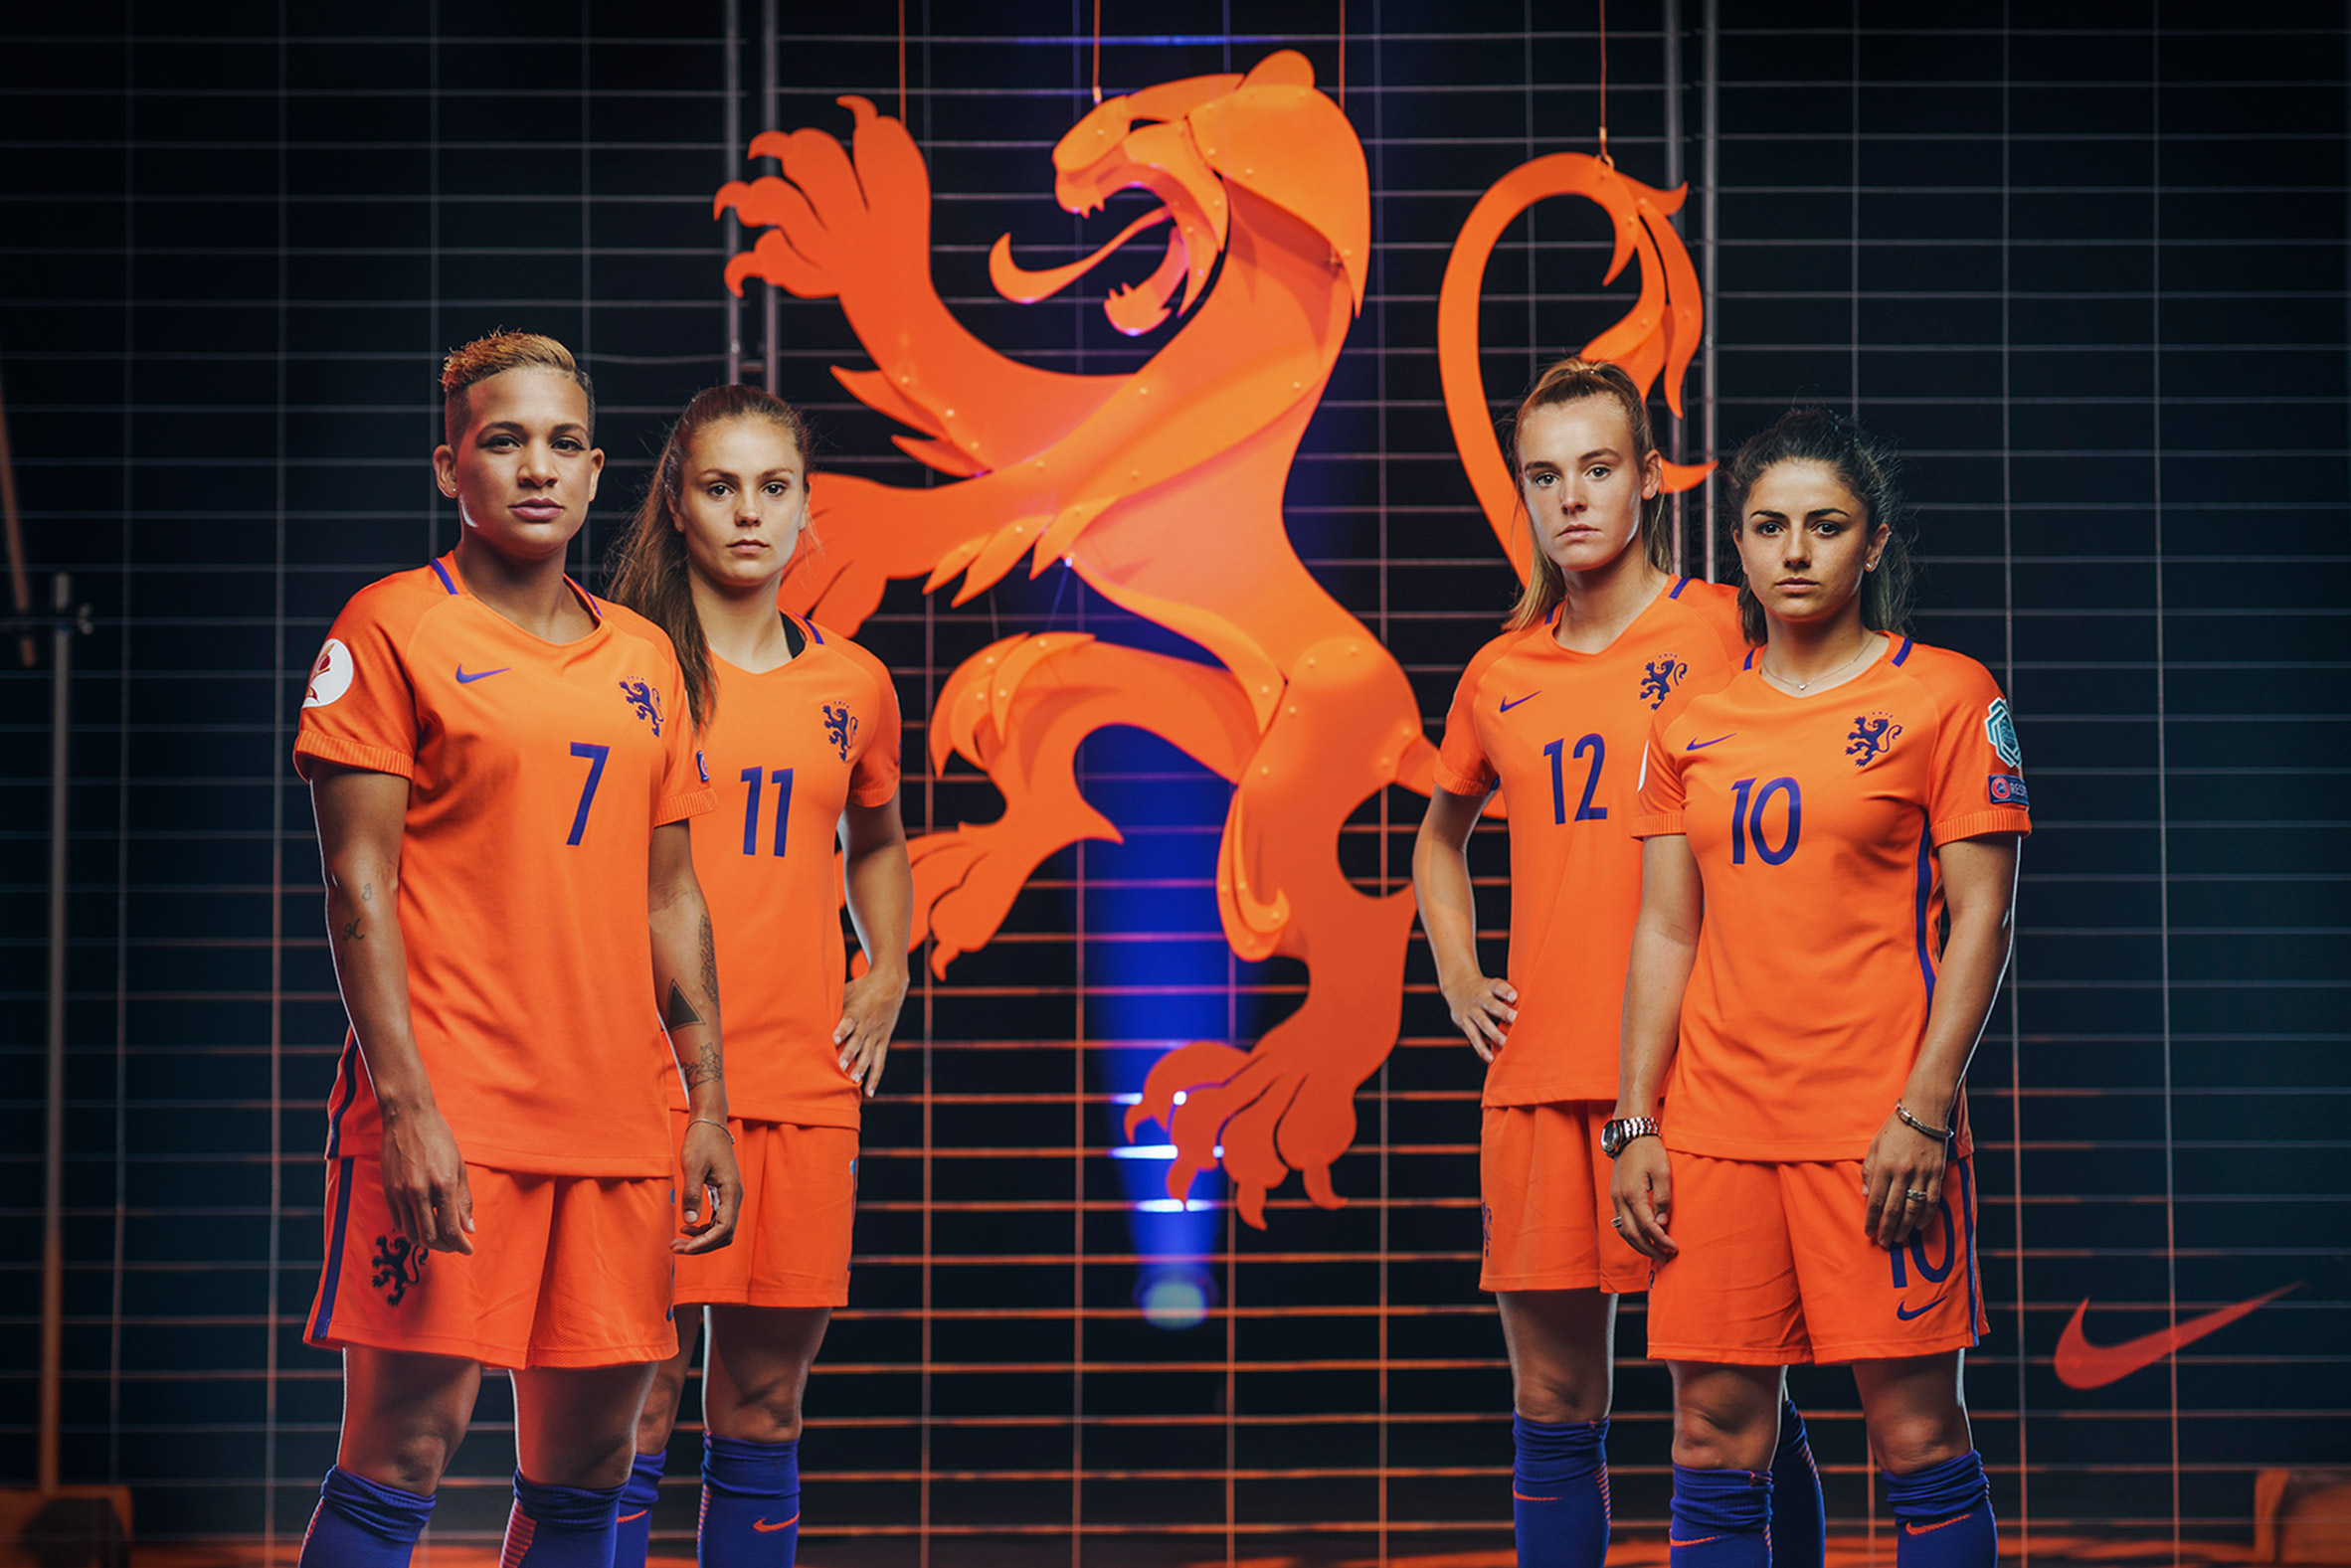 Lion crest on Dutch national football kits undergoes sex change for women's team